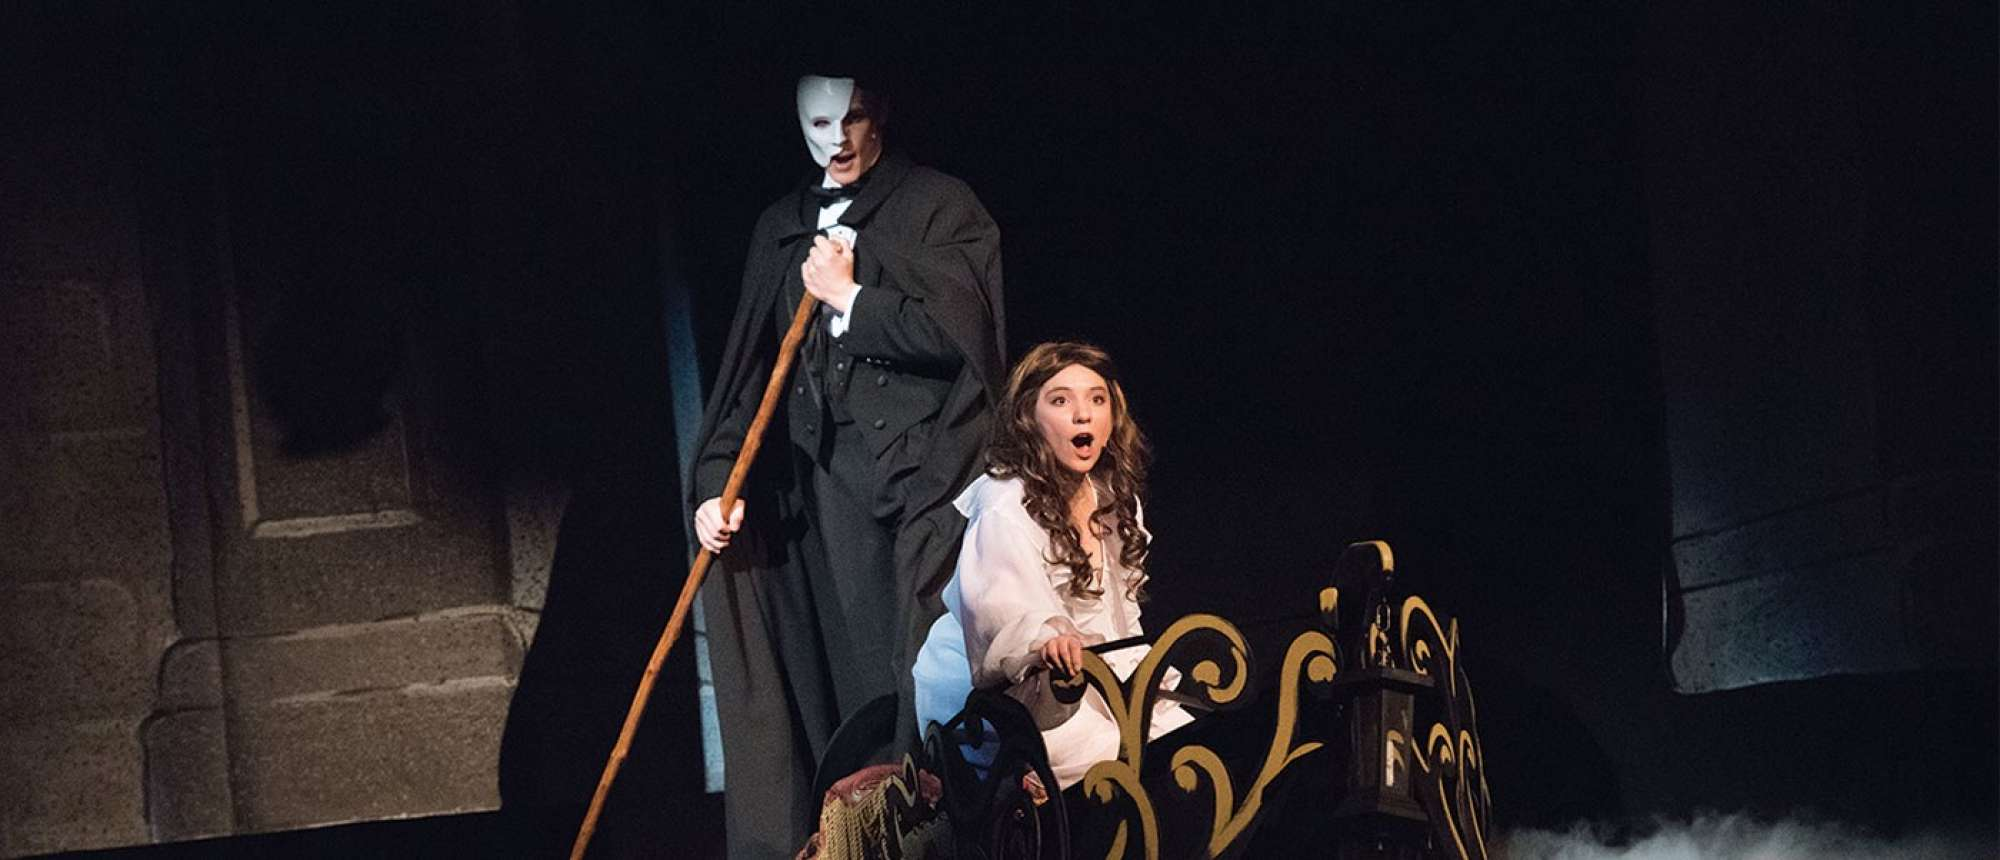 Phantom of the Opera performance.